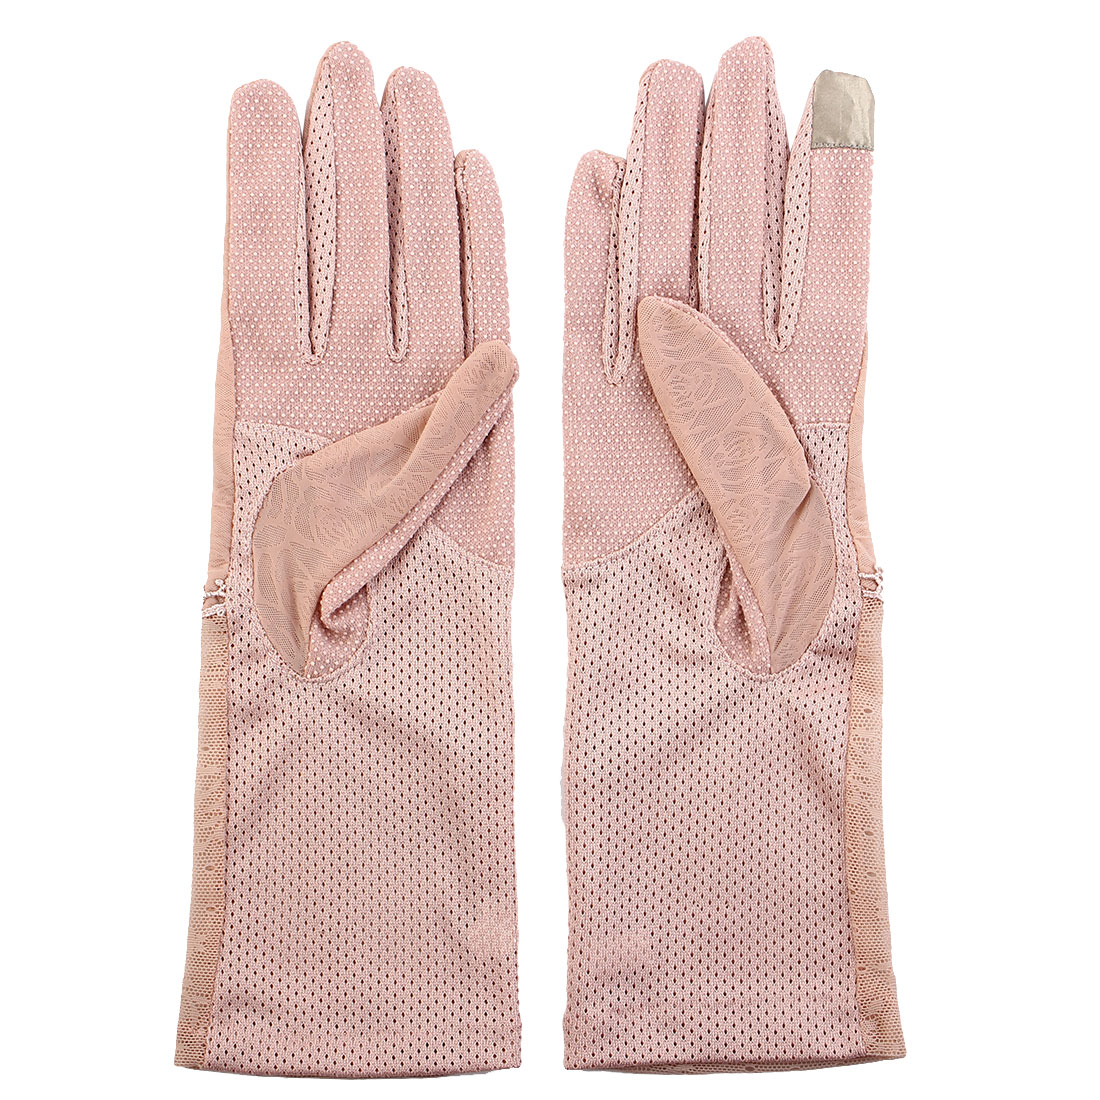 Outdoor Travel Driving Flower Lace Decor Full Finger Non-slip Sun Resistant Gloves Pink Pair for Women